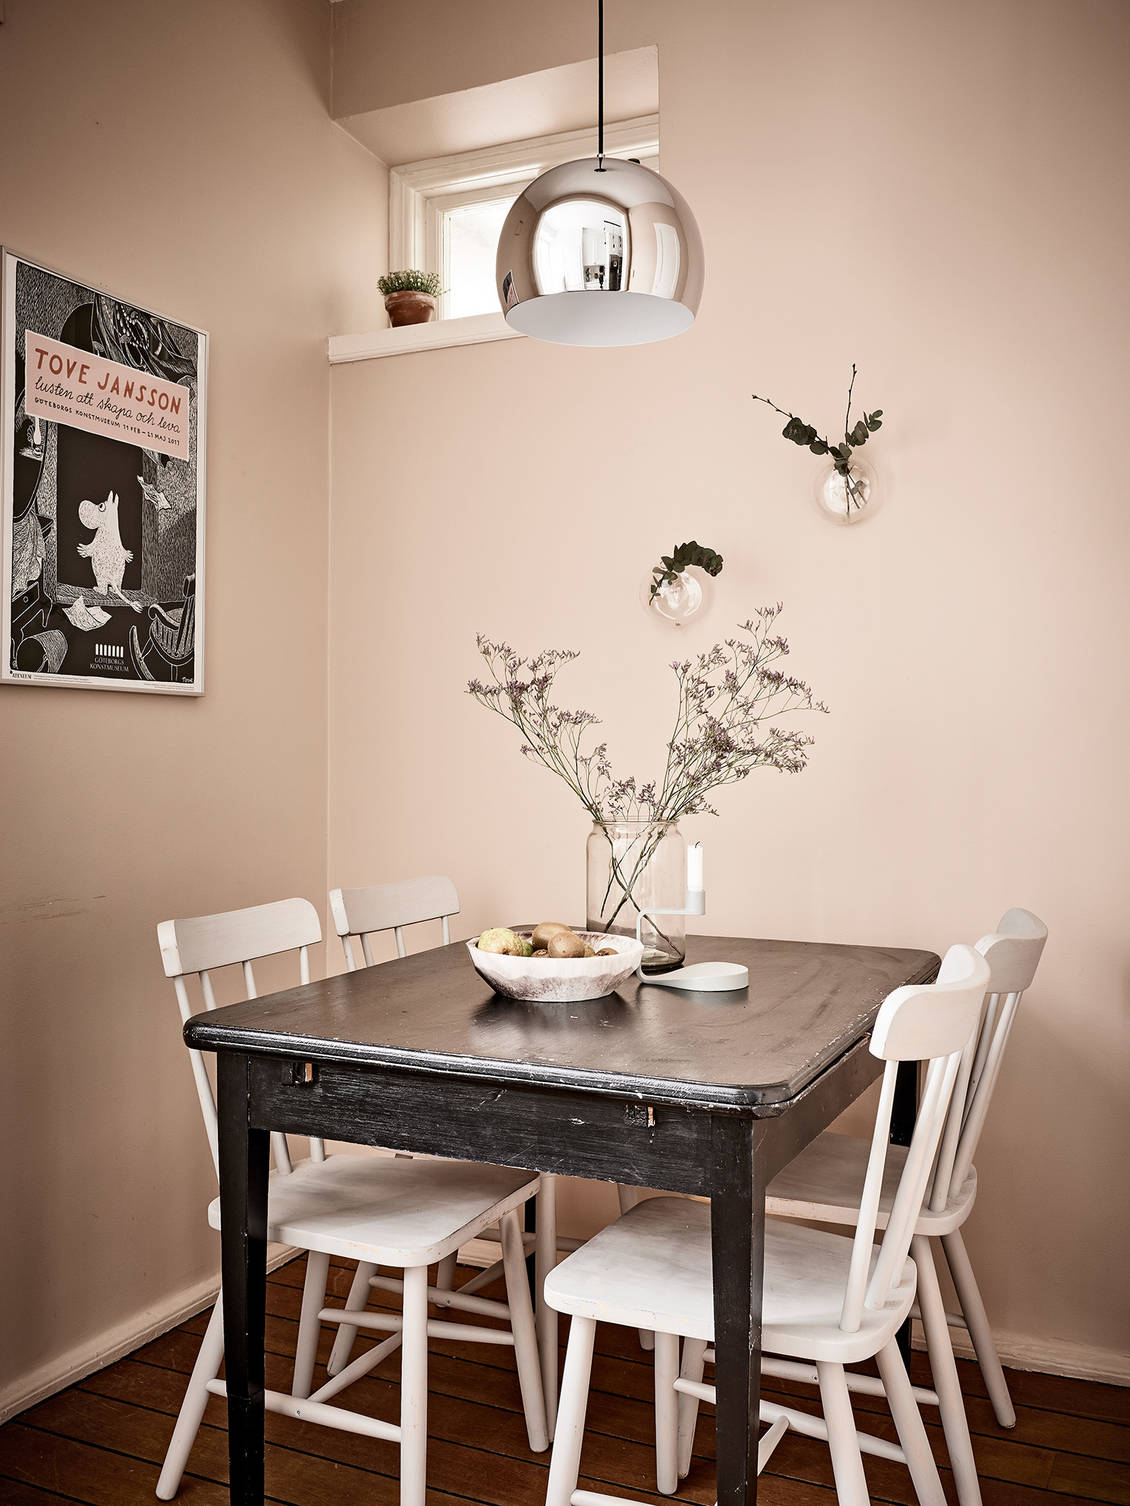 Cozy kitchen table in pink